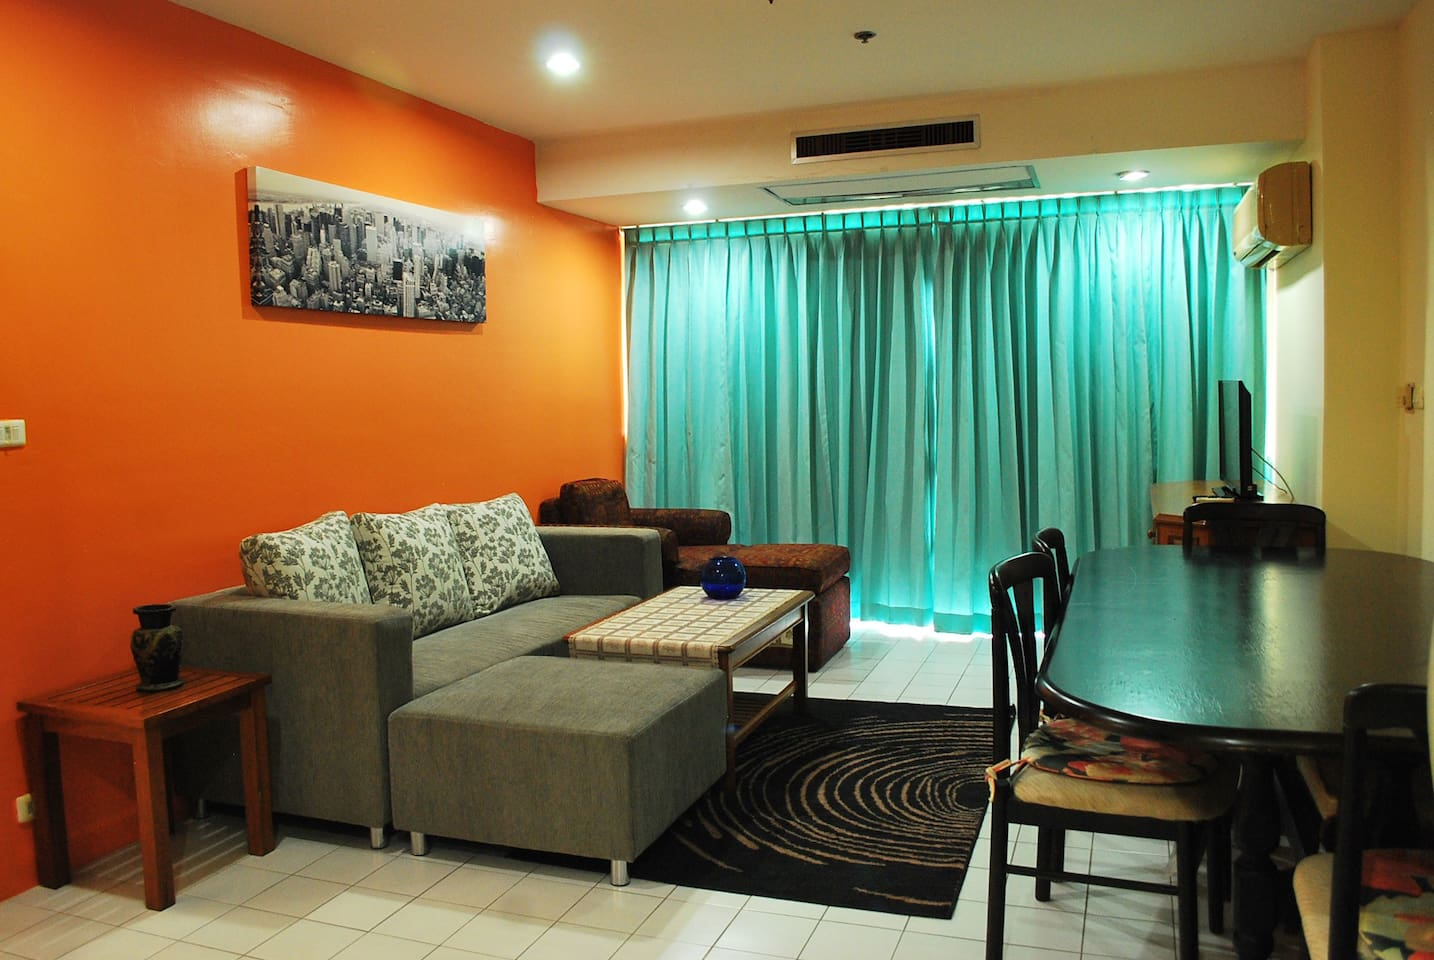 A 110 sqm 2 bedroom with a nice living room and 2 bathrooms